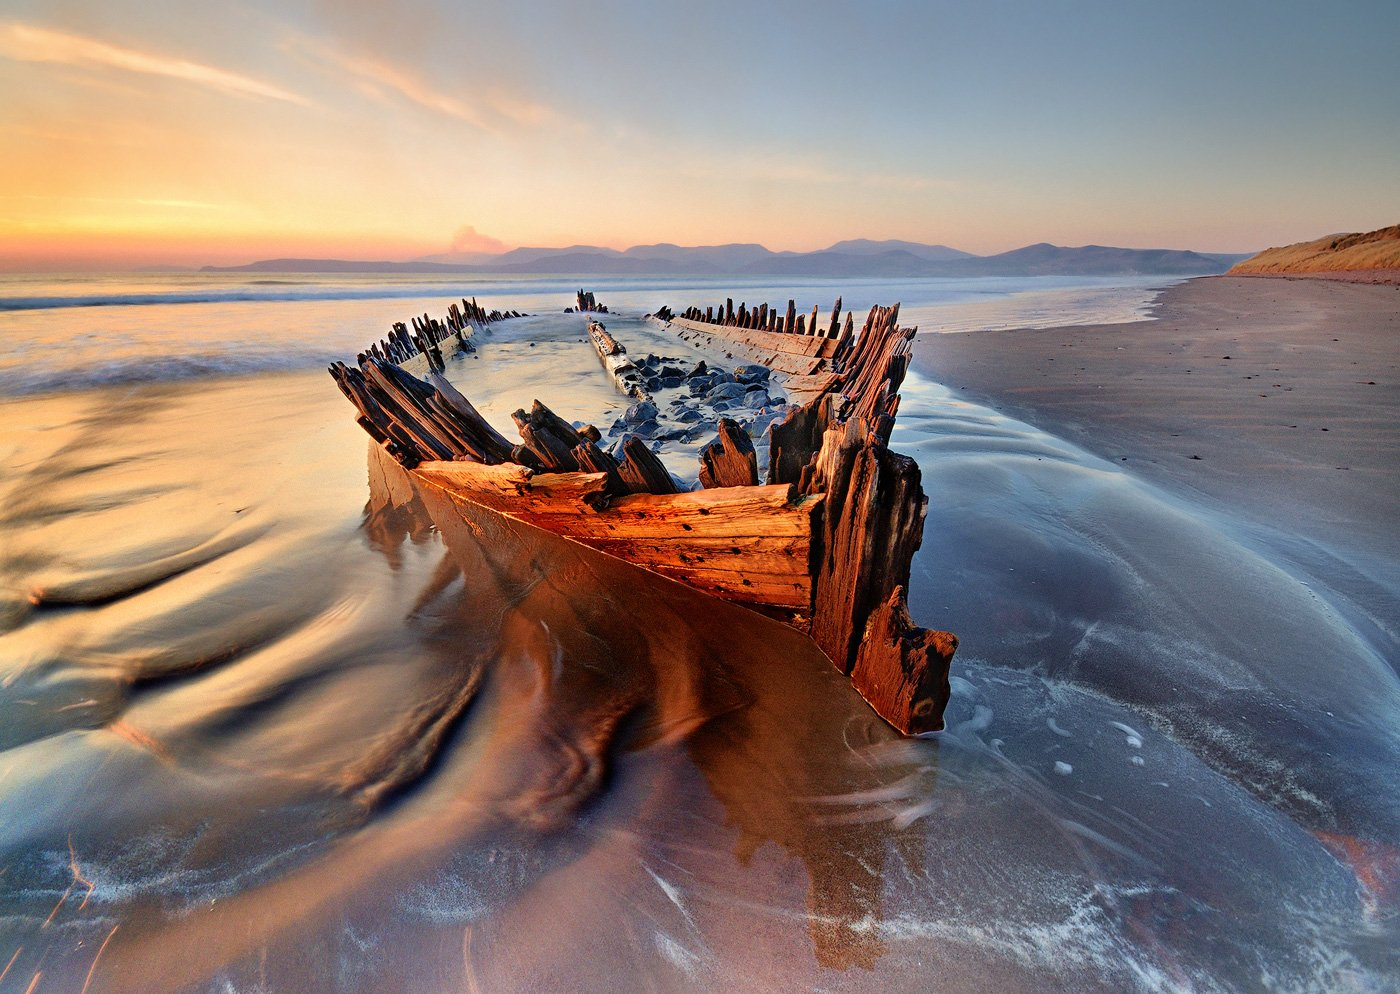 ireland, kerry, rossbeigh, sunset, wreck, boat, ship, beach, iconic, mountains. color, red, Grzegorz Kaczmarek